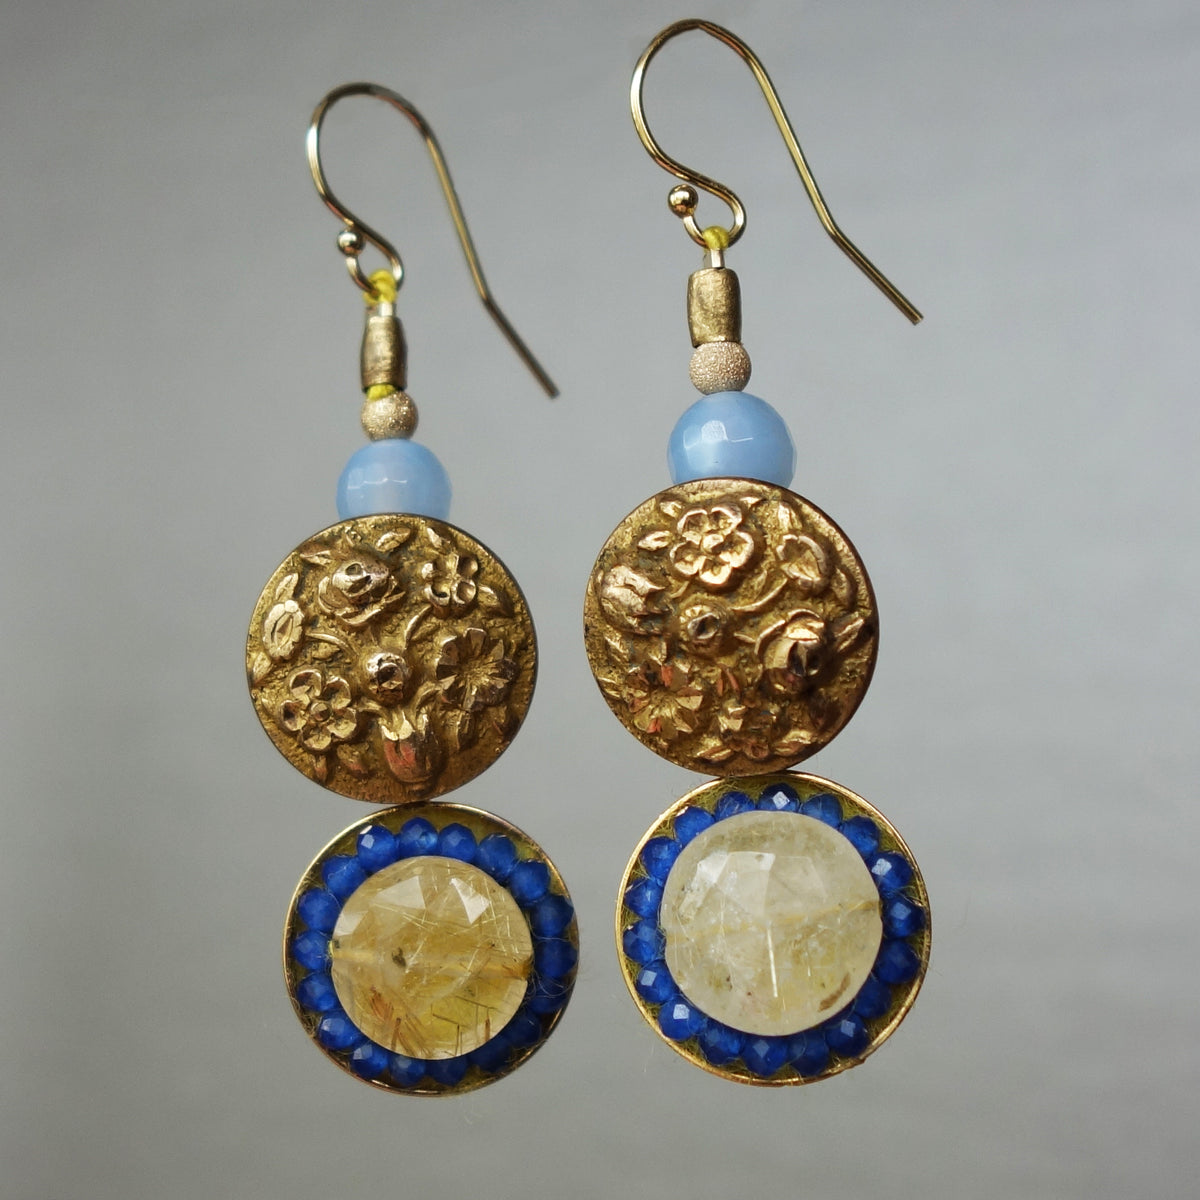 Ooo La La Vintage Gold Mosaic Earrings (Wanderlust Paris)